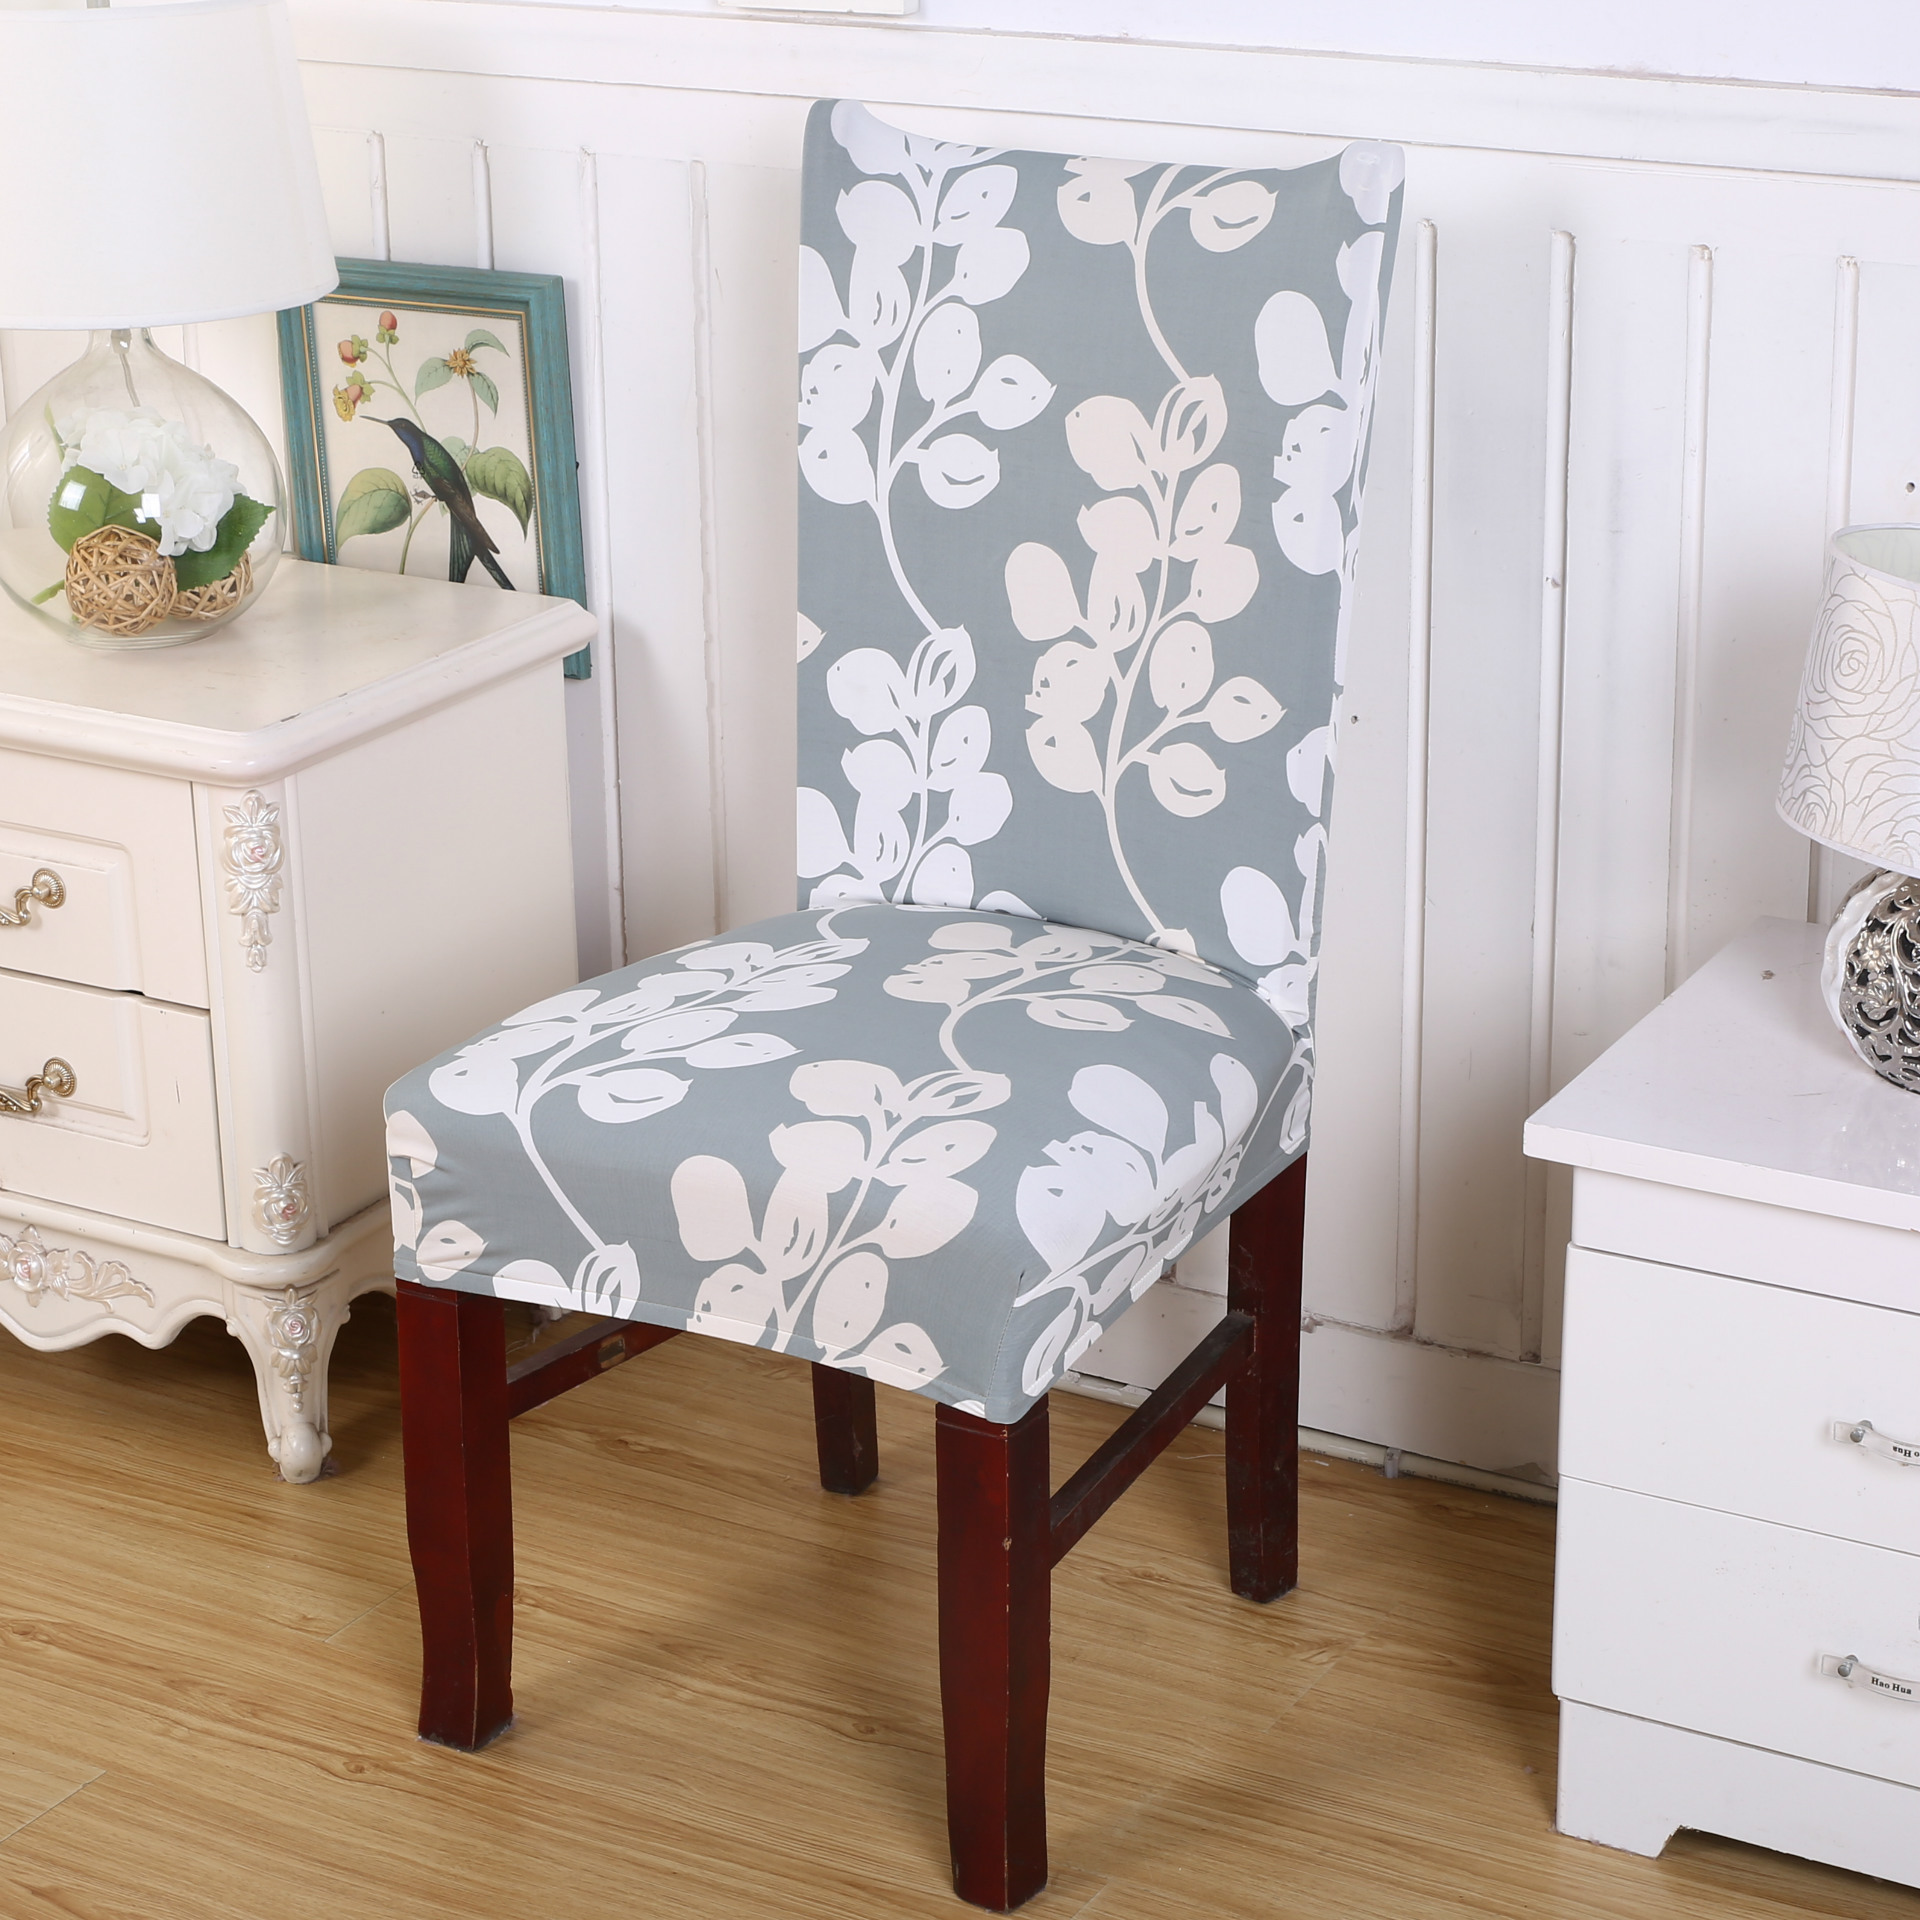 Dining Chair Covers Aliexpress Truck Bed Chairs Spandex Floral Printing Stretch Dinning Protector